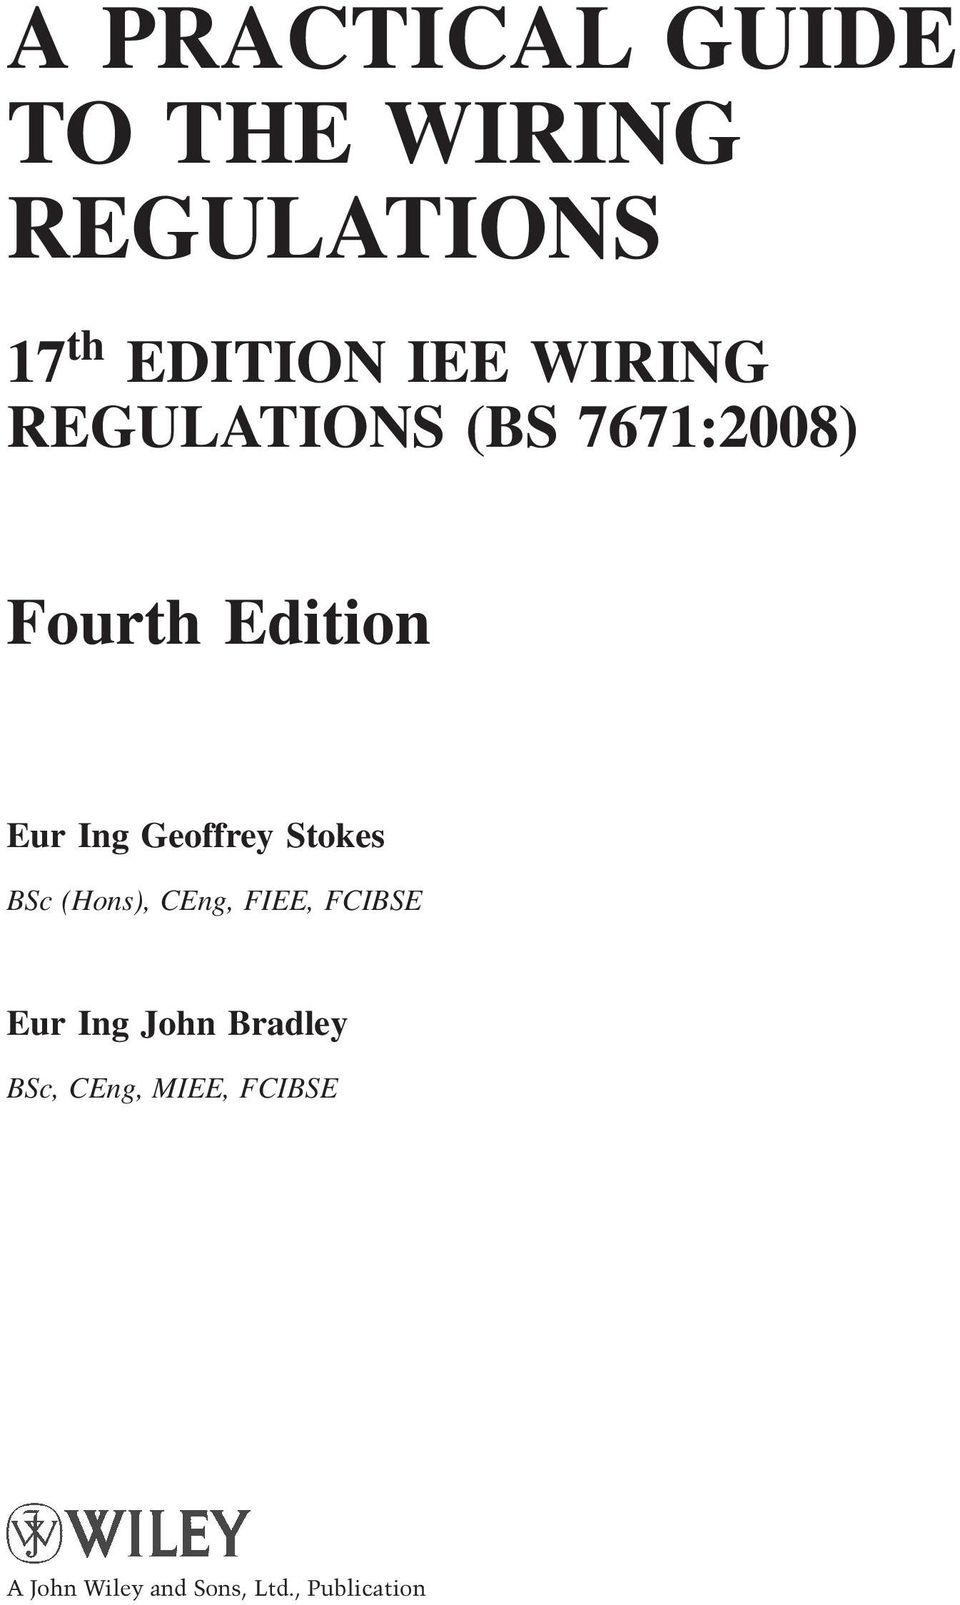 A Practical Guide To The Wiring Regulations Pdf Iee Regulation Geoffrey Stokes Bsc Hons Ceng Fiee Fcibse Eur Ing John